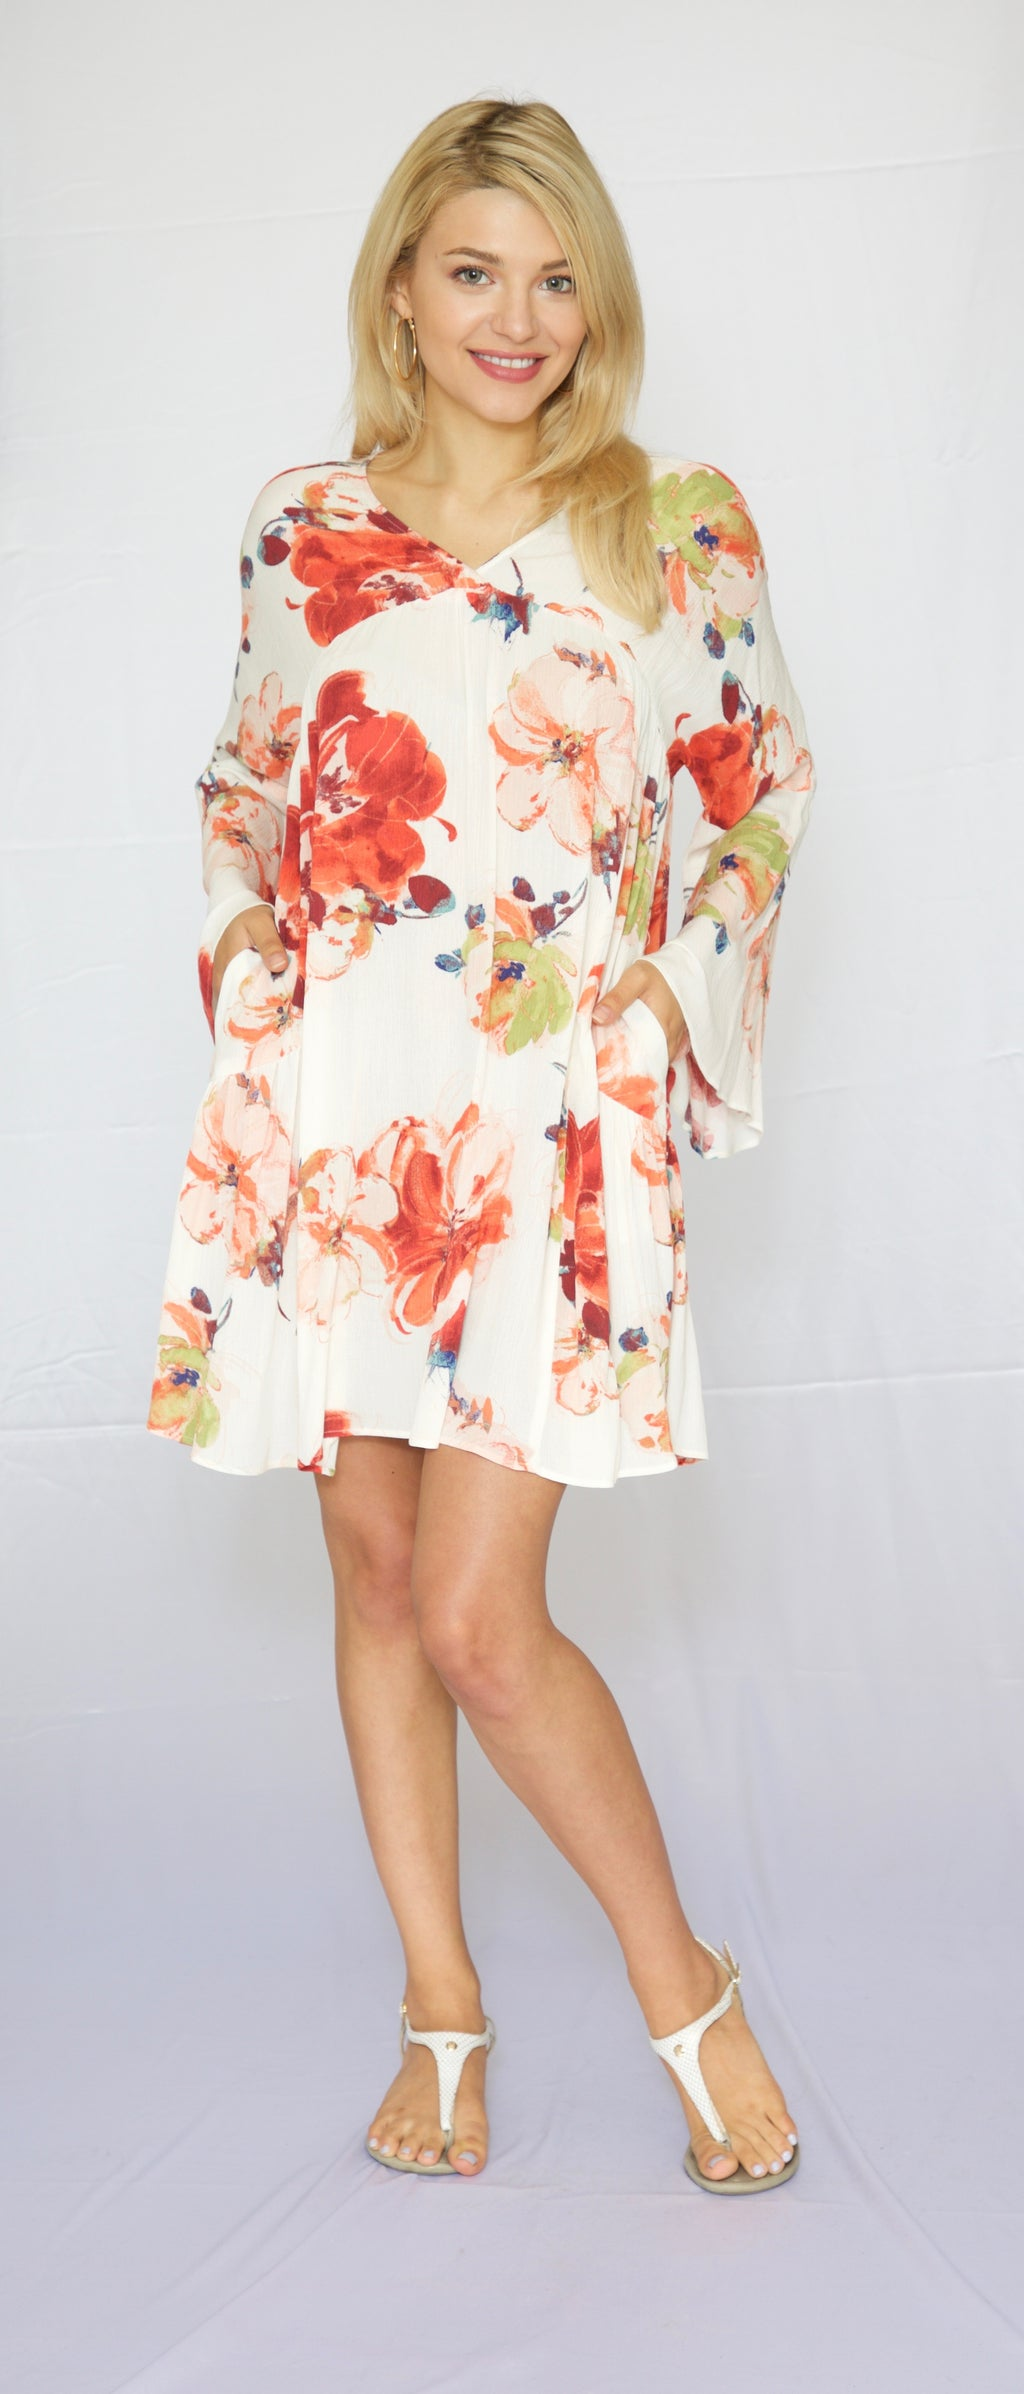 Trishia Grace-Larrabee Dress Orange Floral